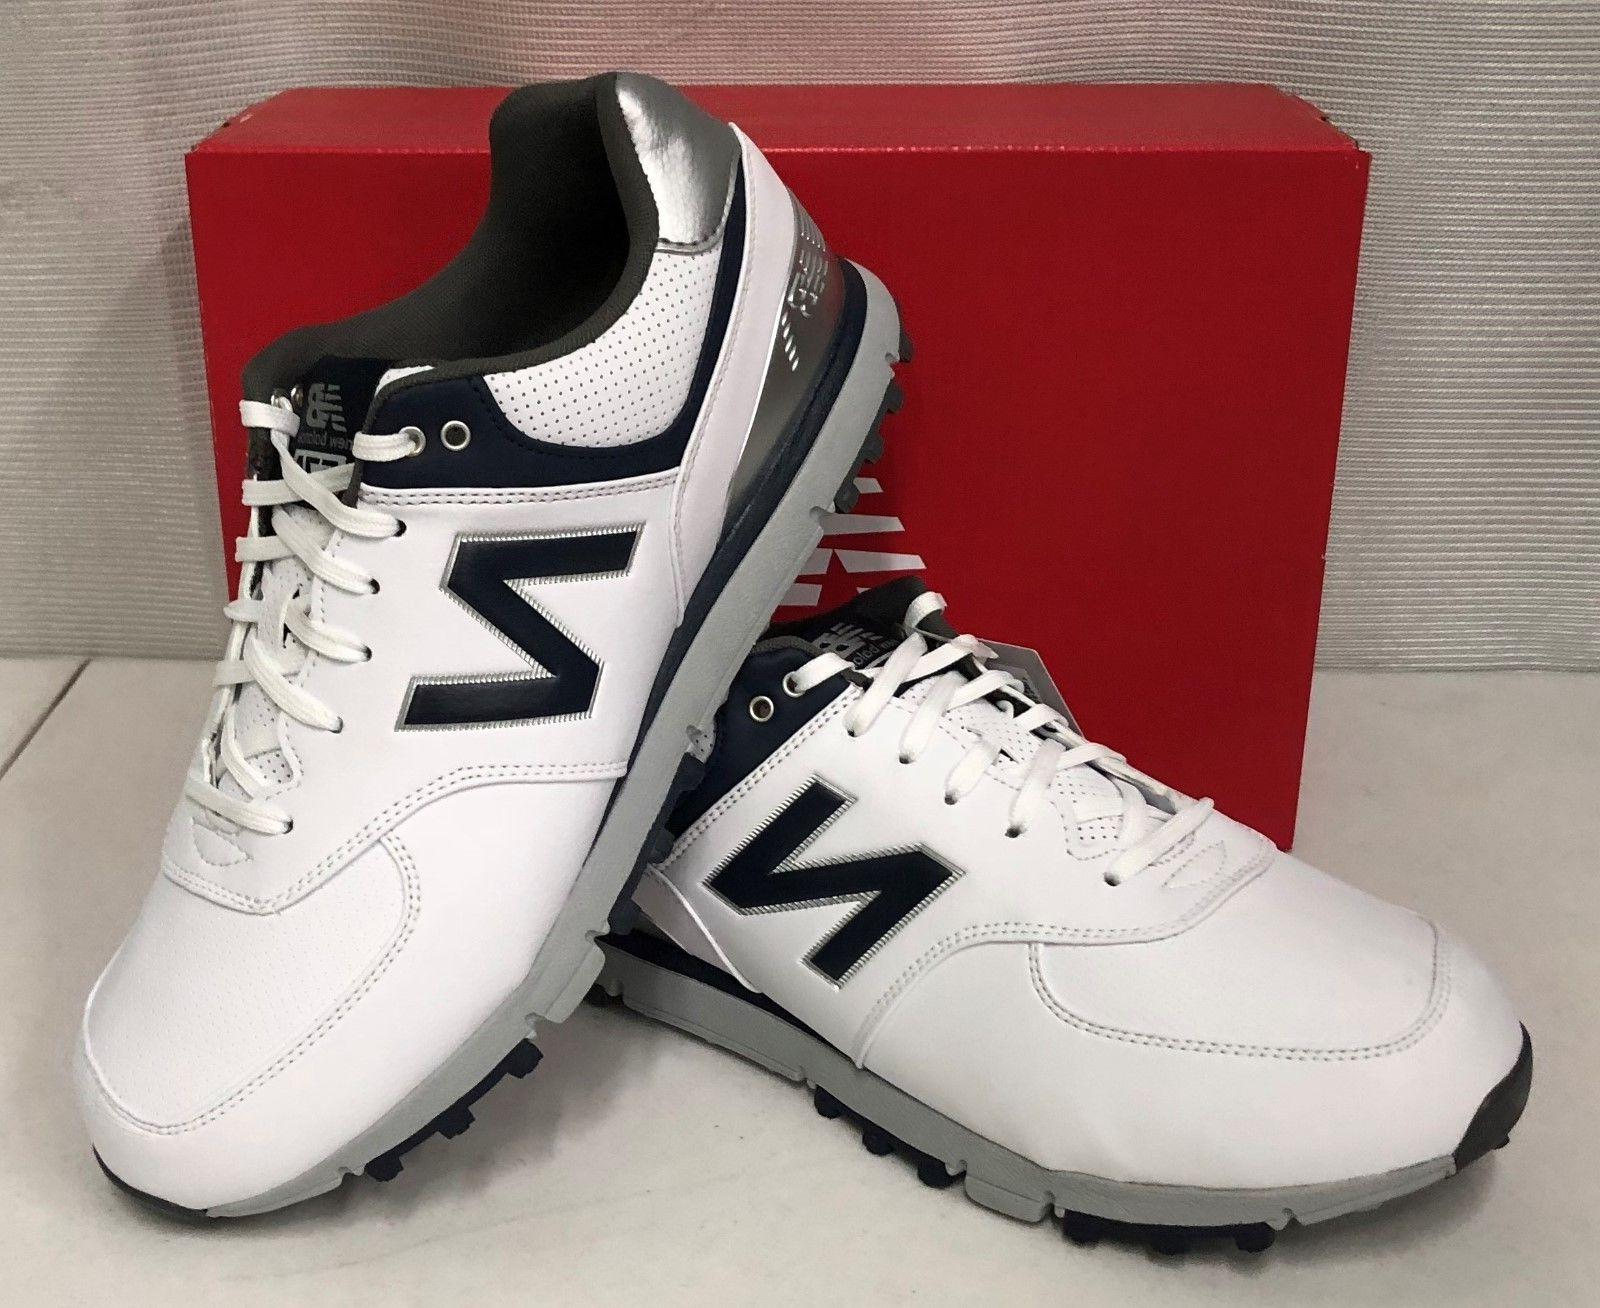 New Balance SL 574 Mens Golf Shoes - White Navy Blue - NBG57